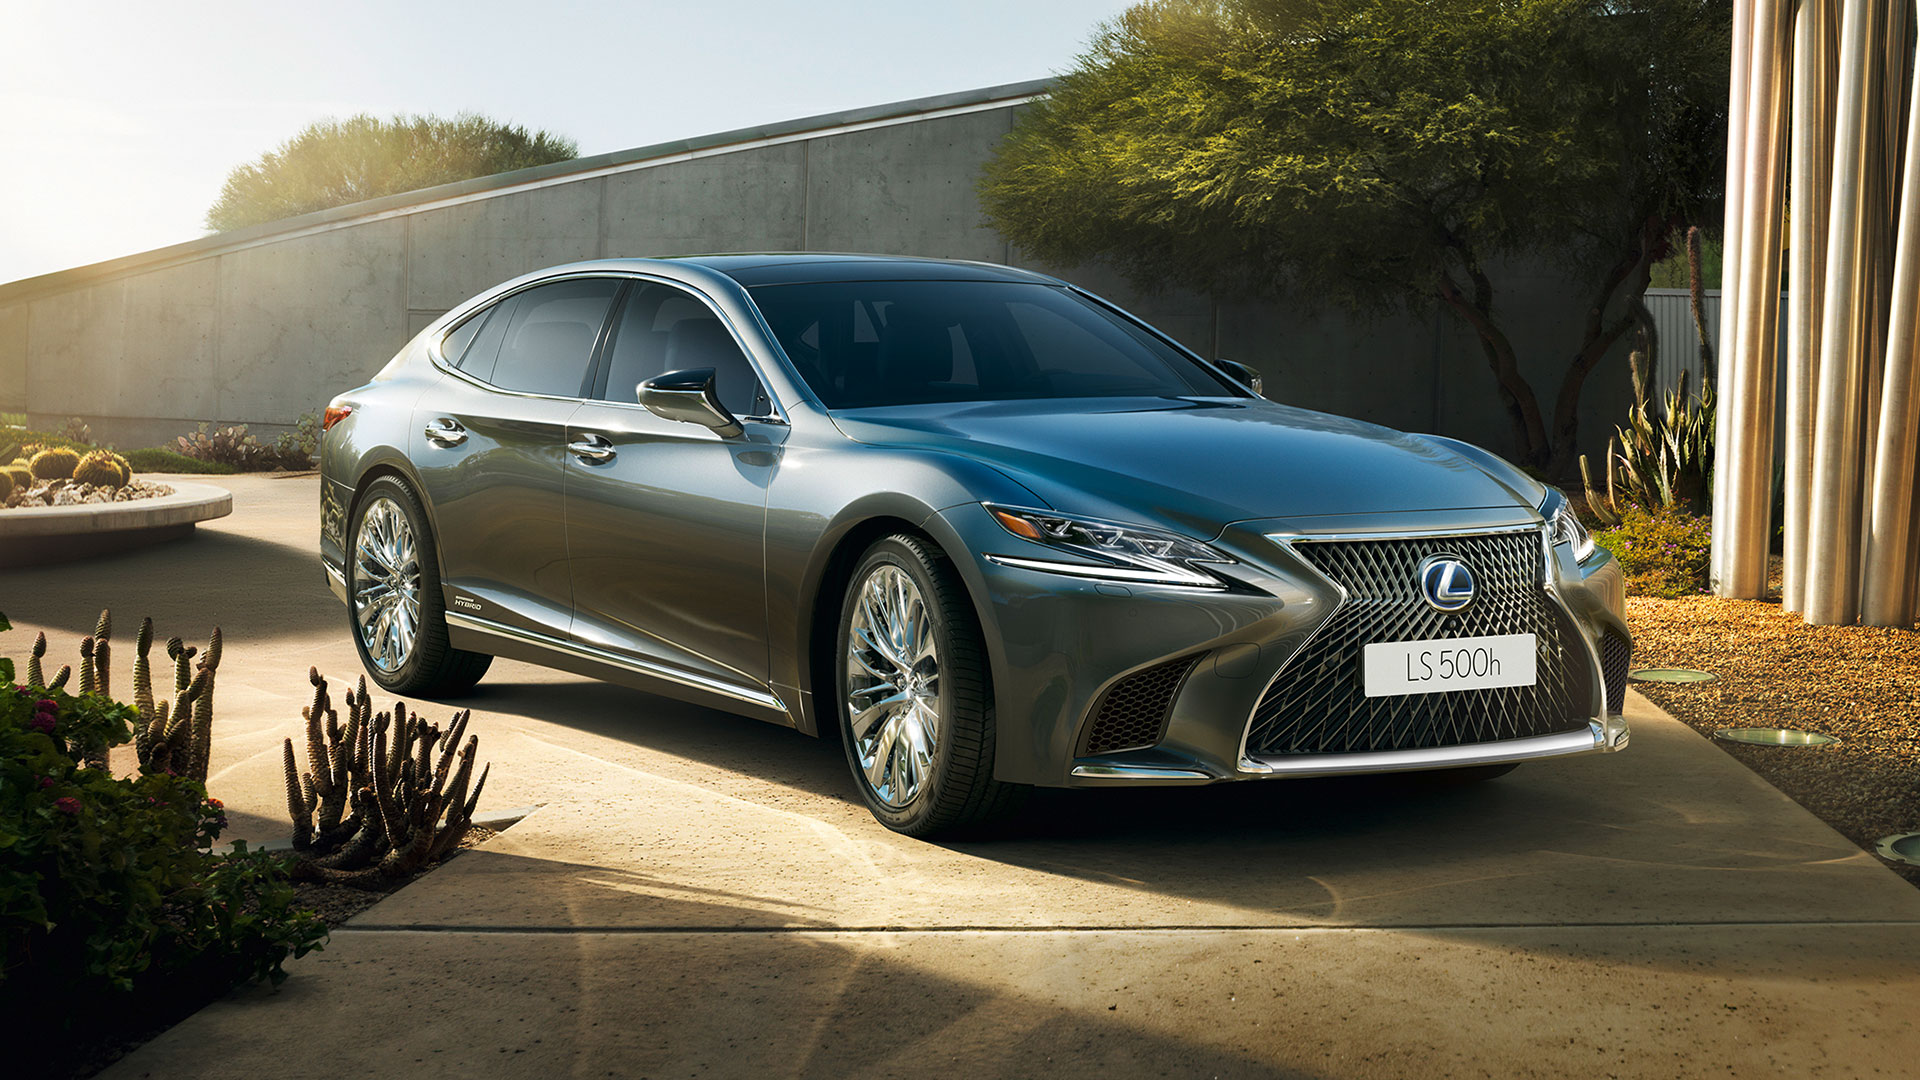 2018 lexus ls 500h next steps personalise